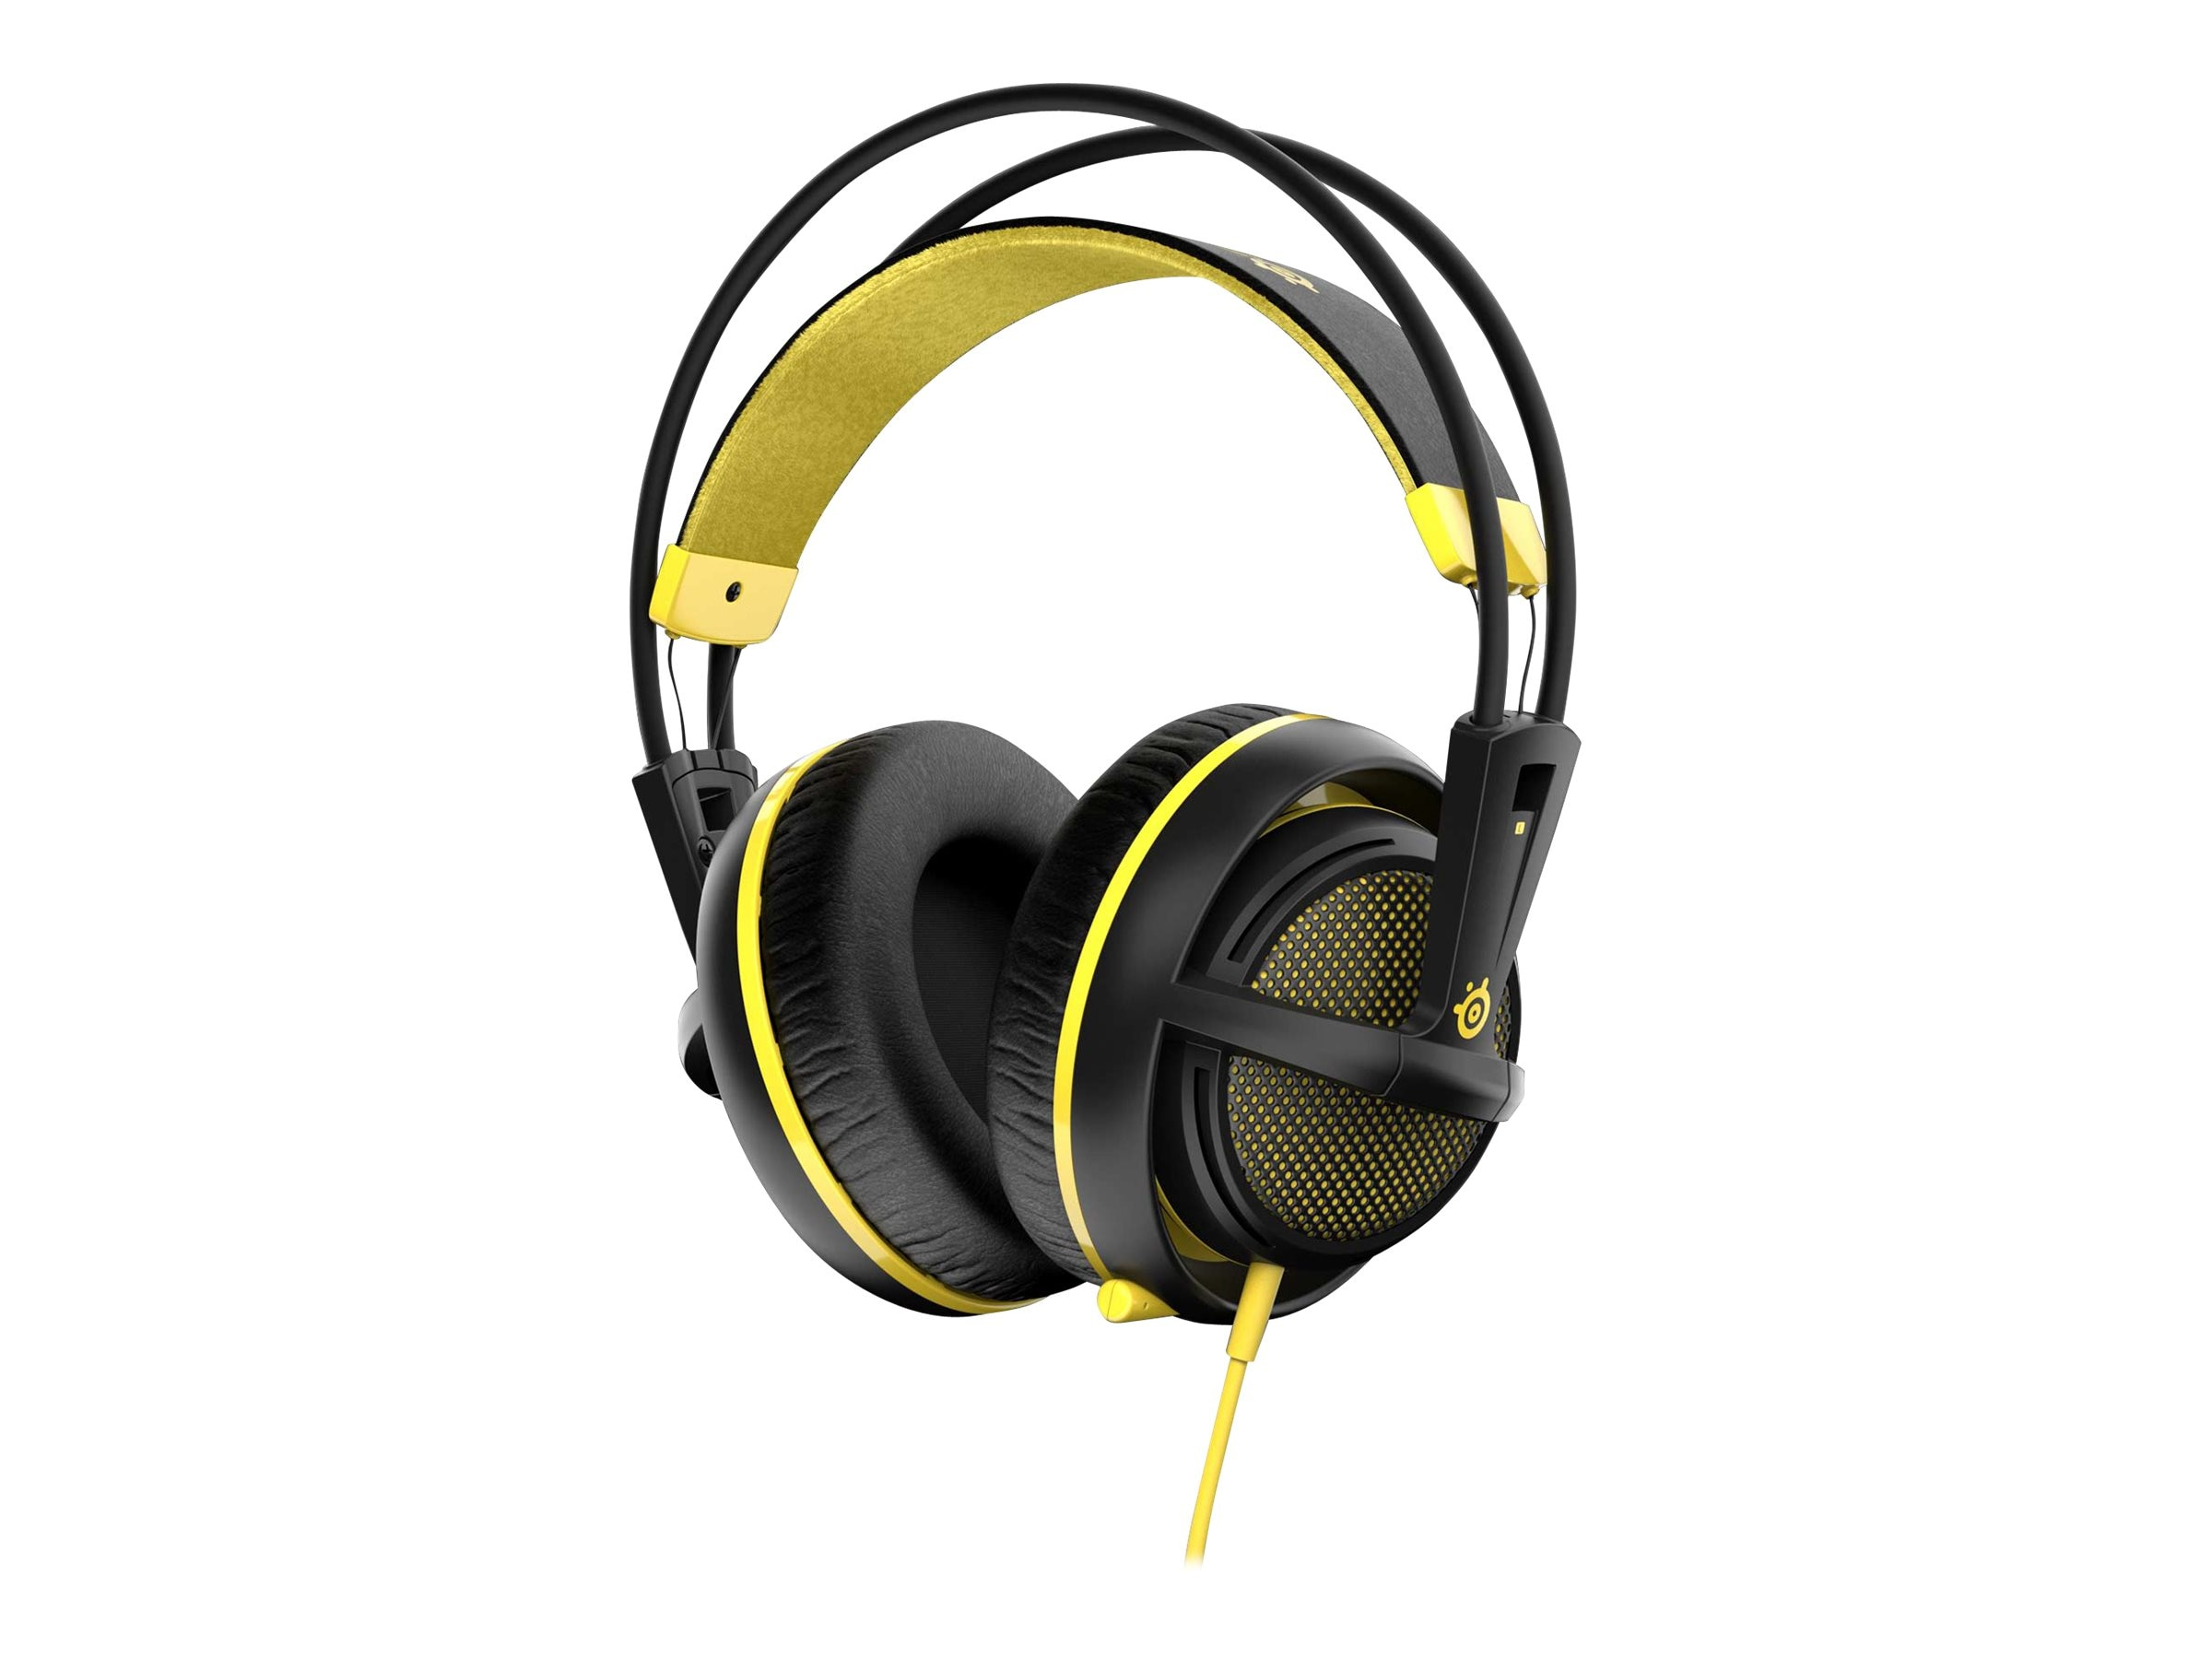 Steelseries Siberia 200 Headset - Yellow, 51138, 30806671, Headsets (w/ microphone)